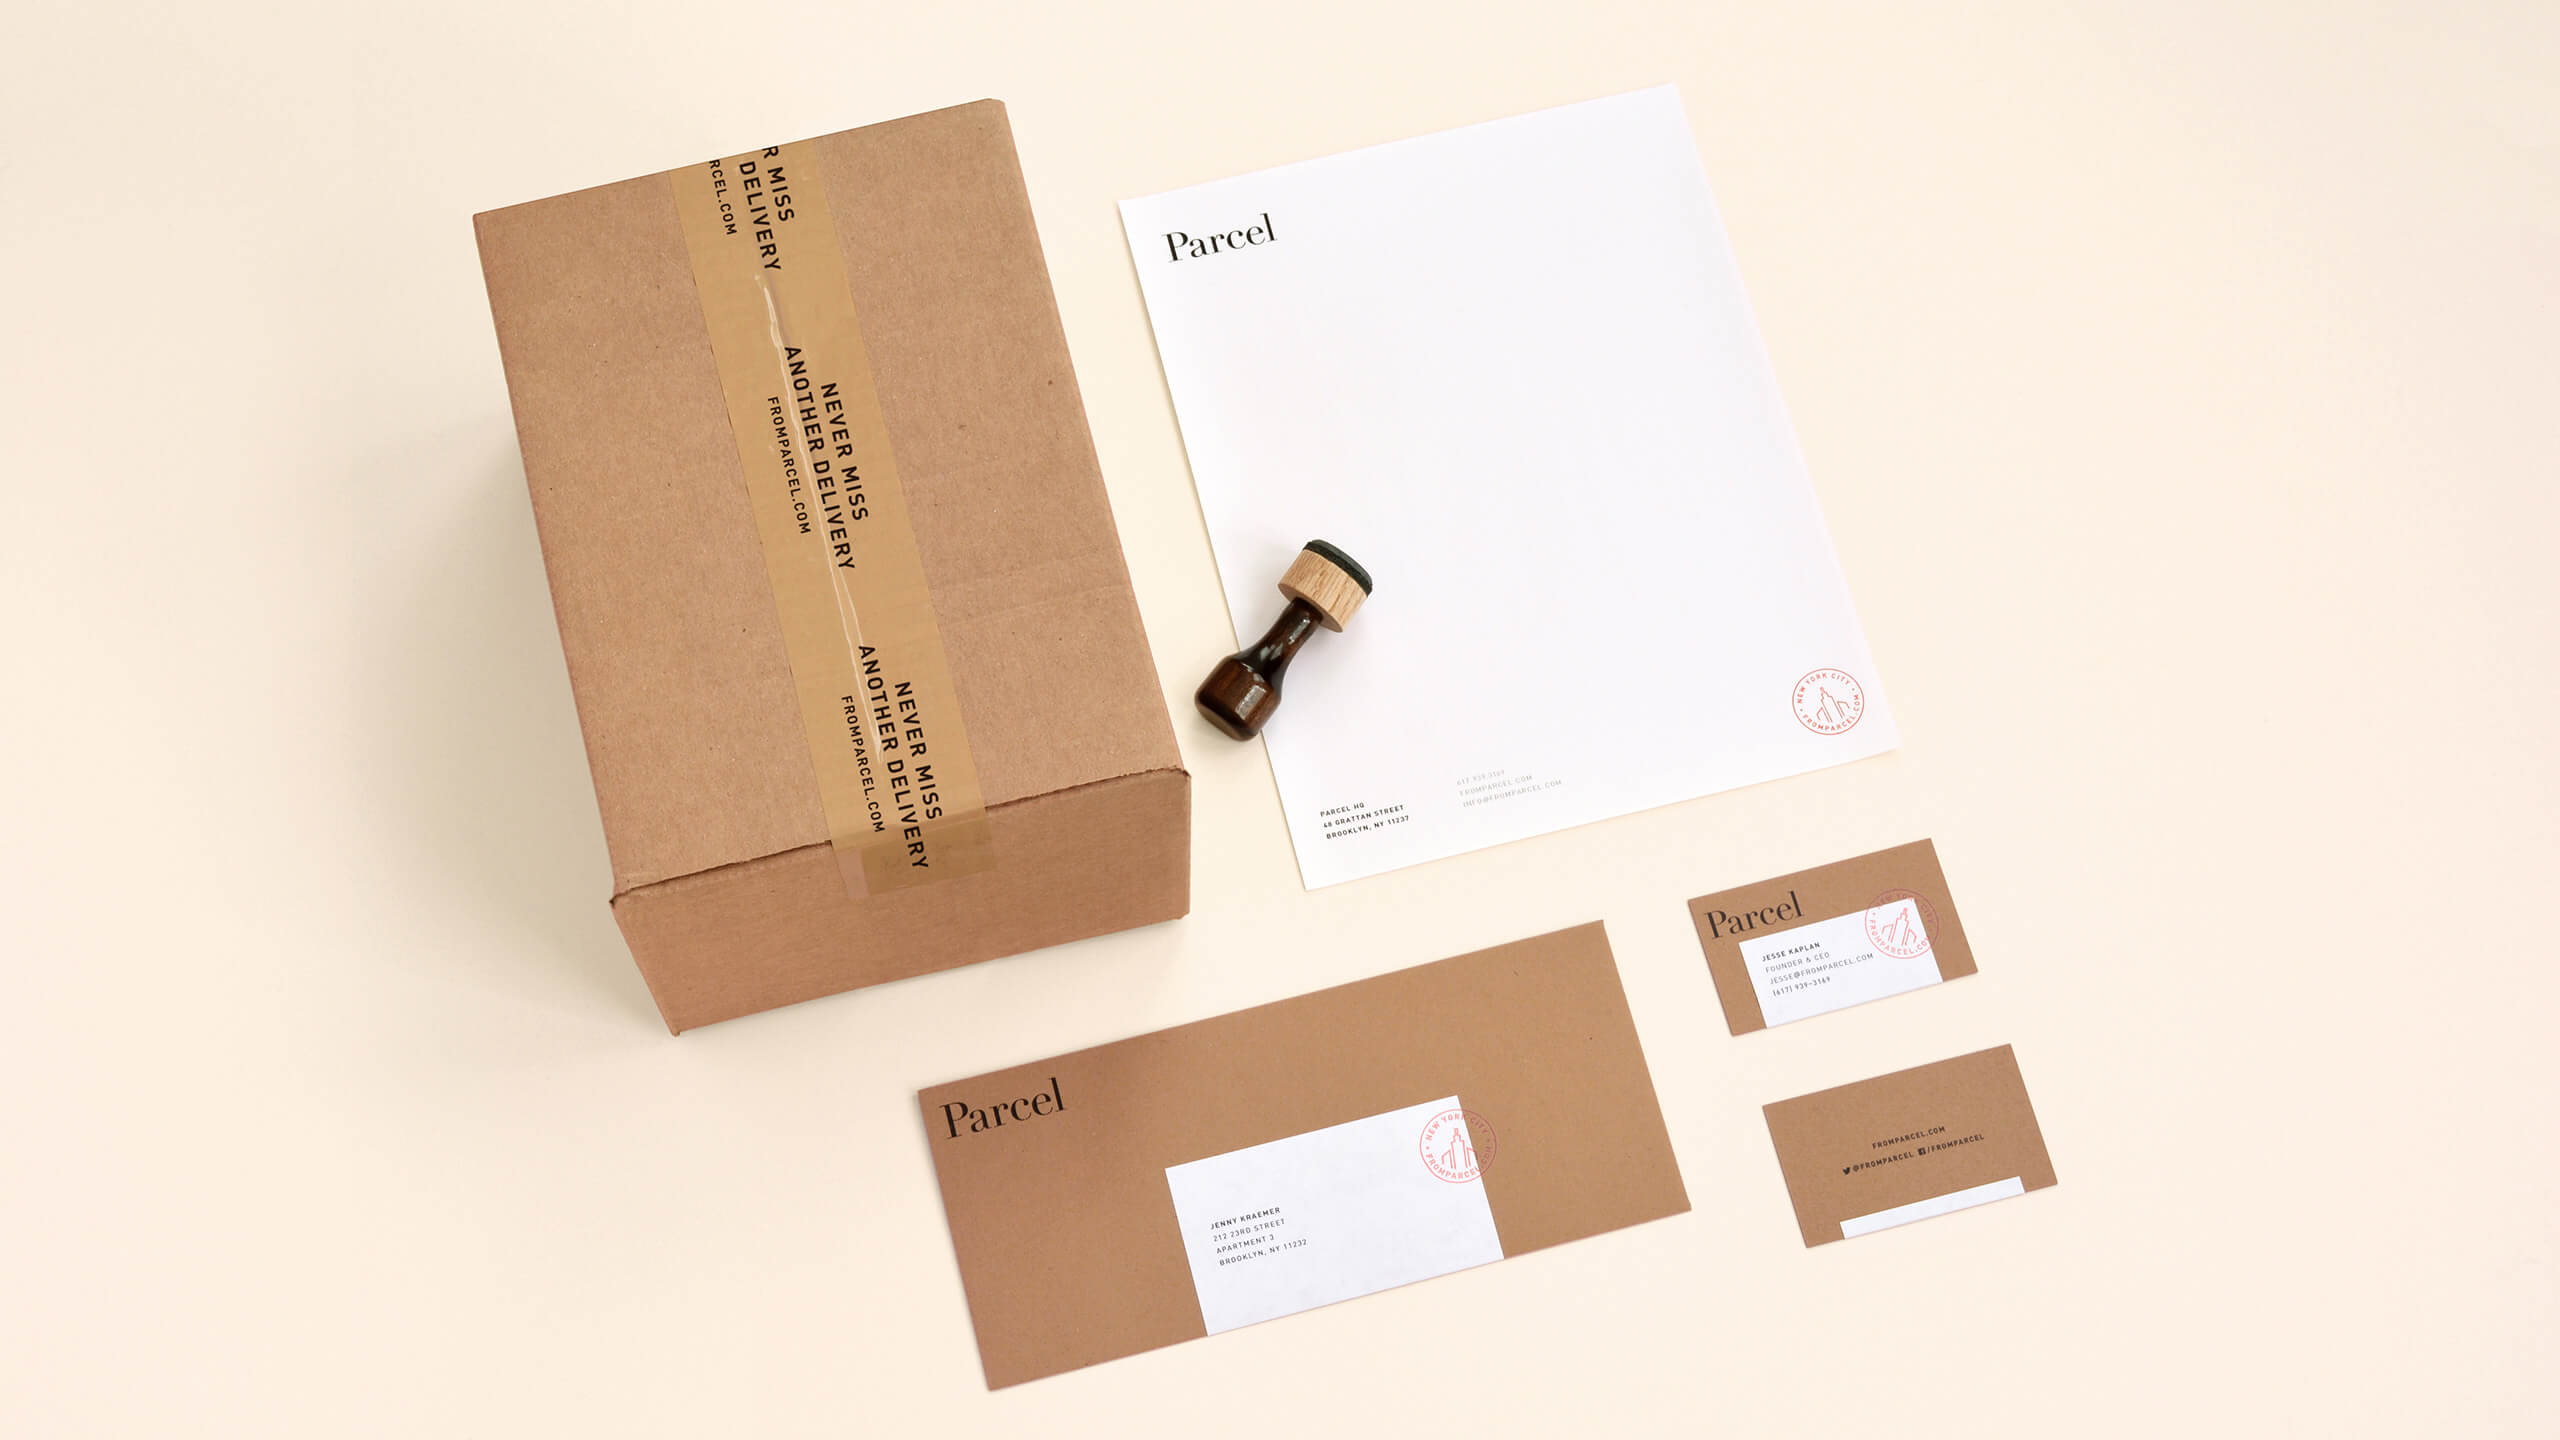 bueno-work-parcel-stationery